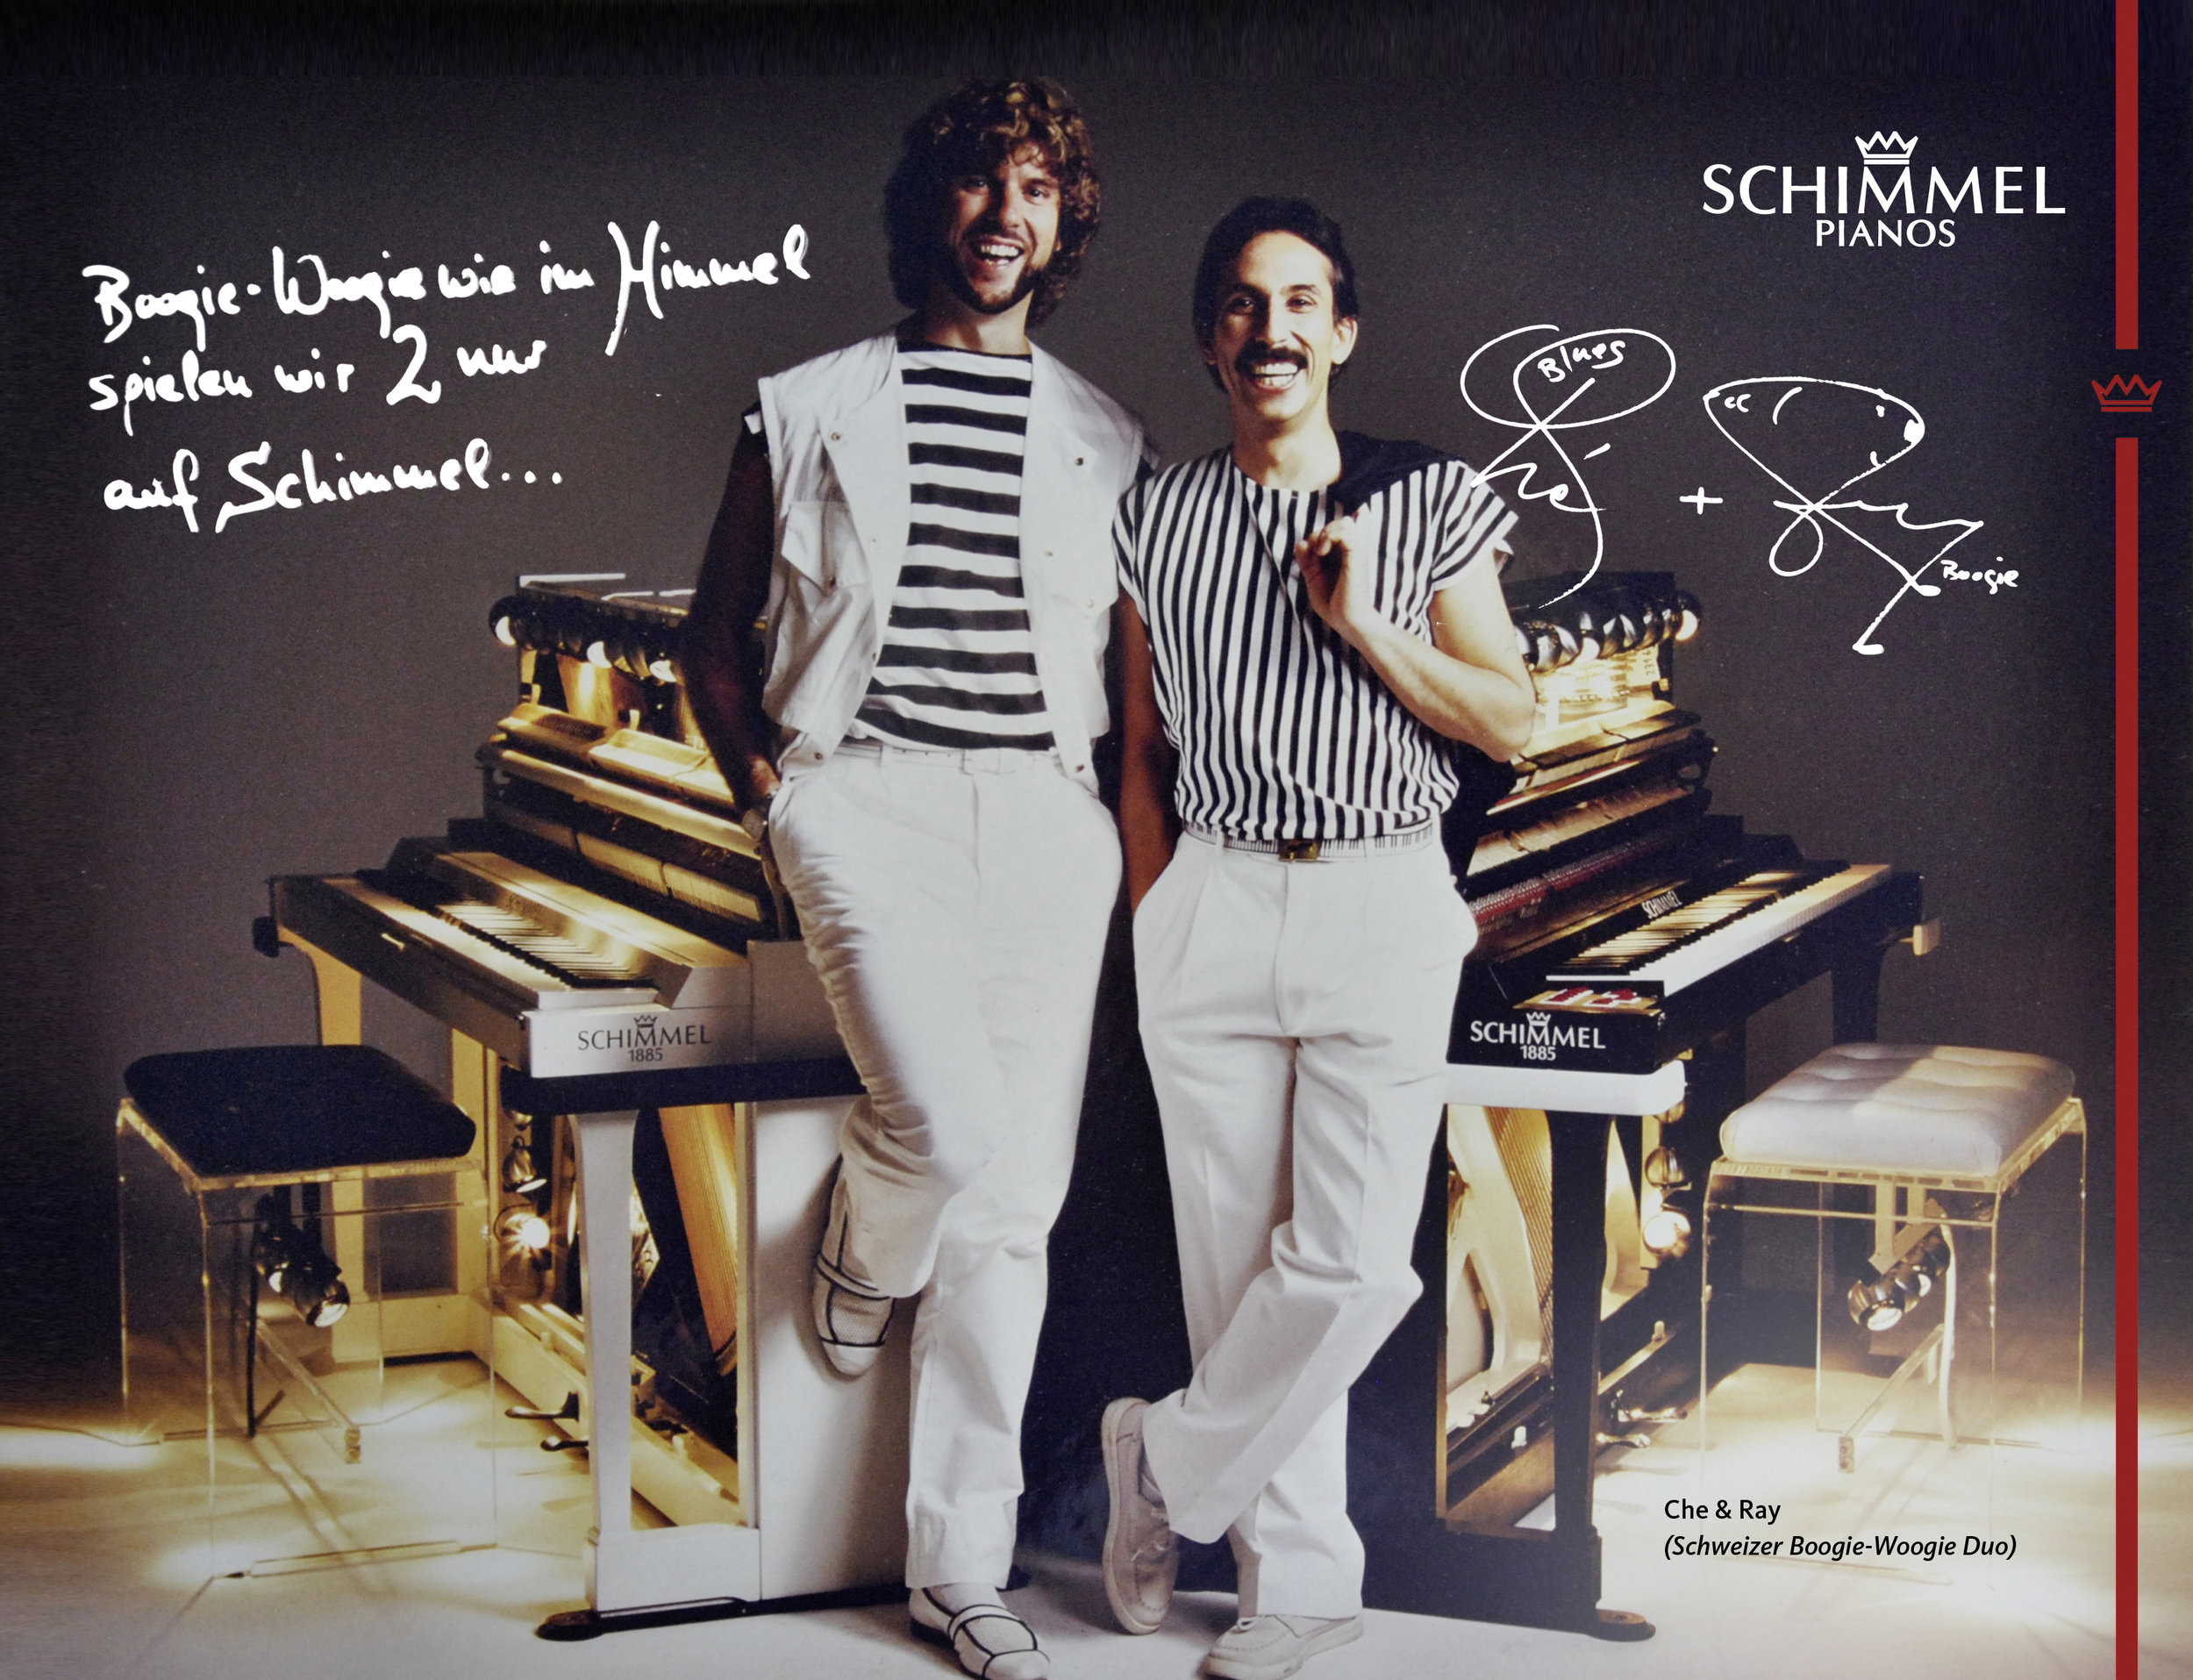 Che & Ray Schimmel Pianos